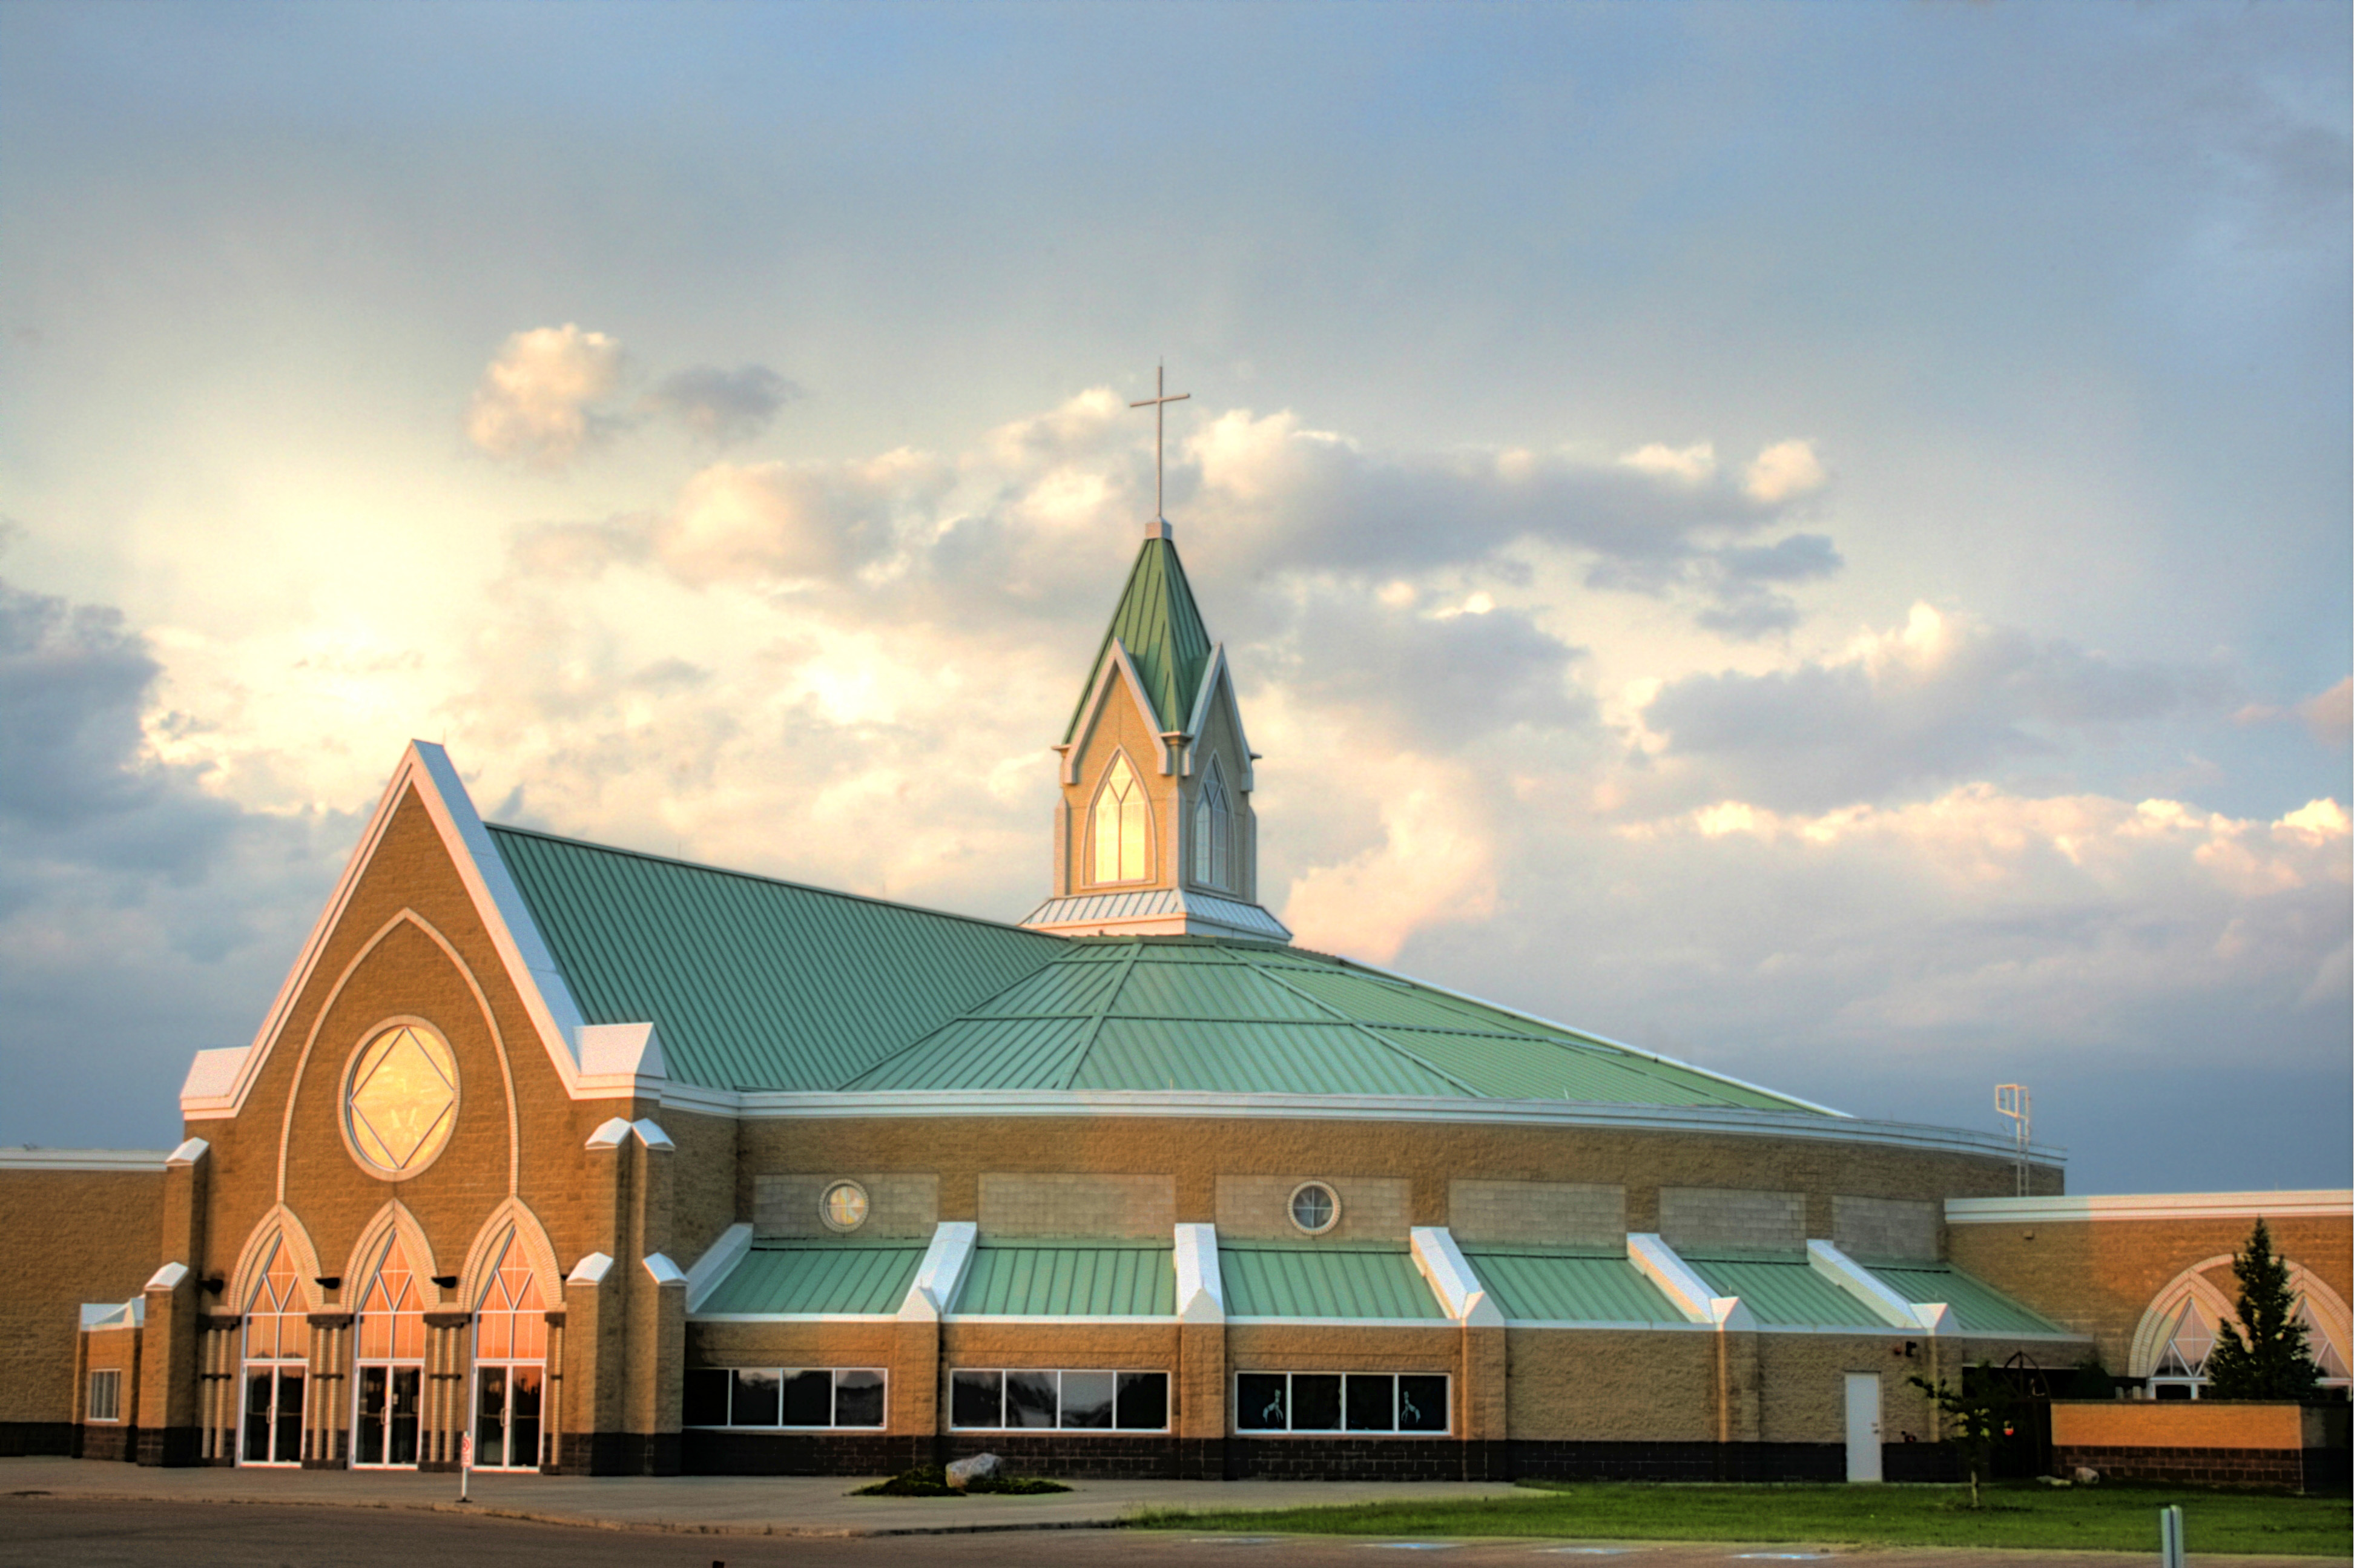 Presbyterian church in canada issues letter of repentance to lgbt community